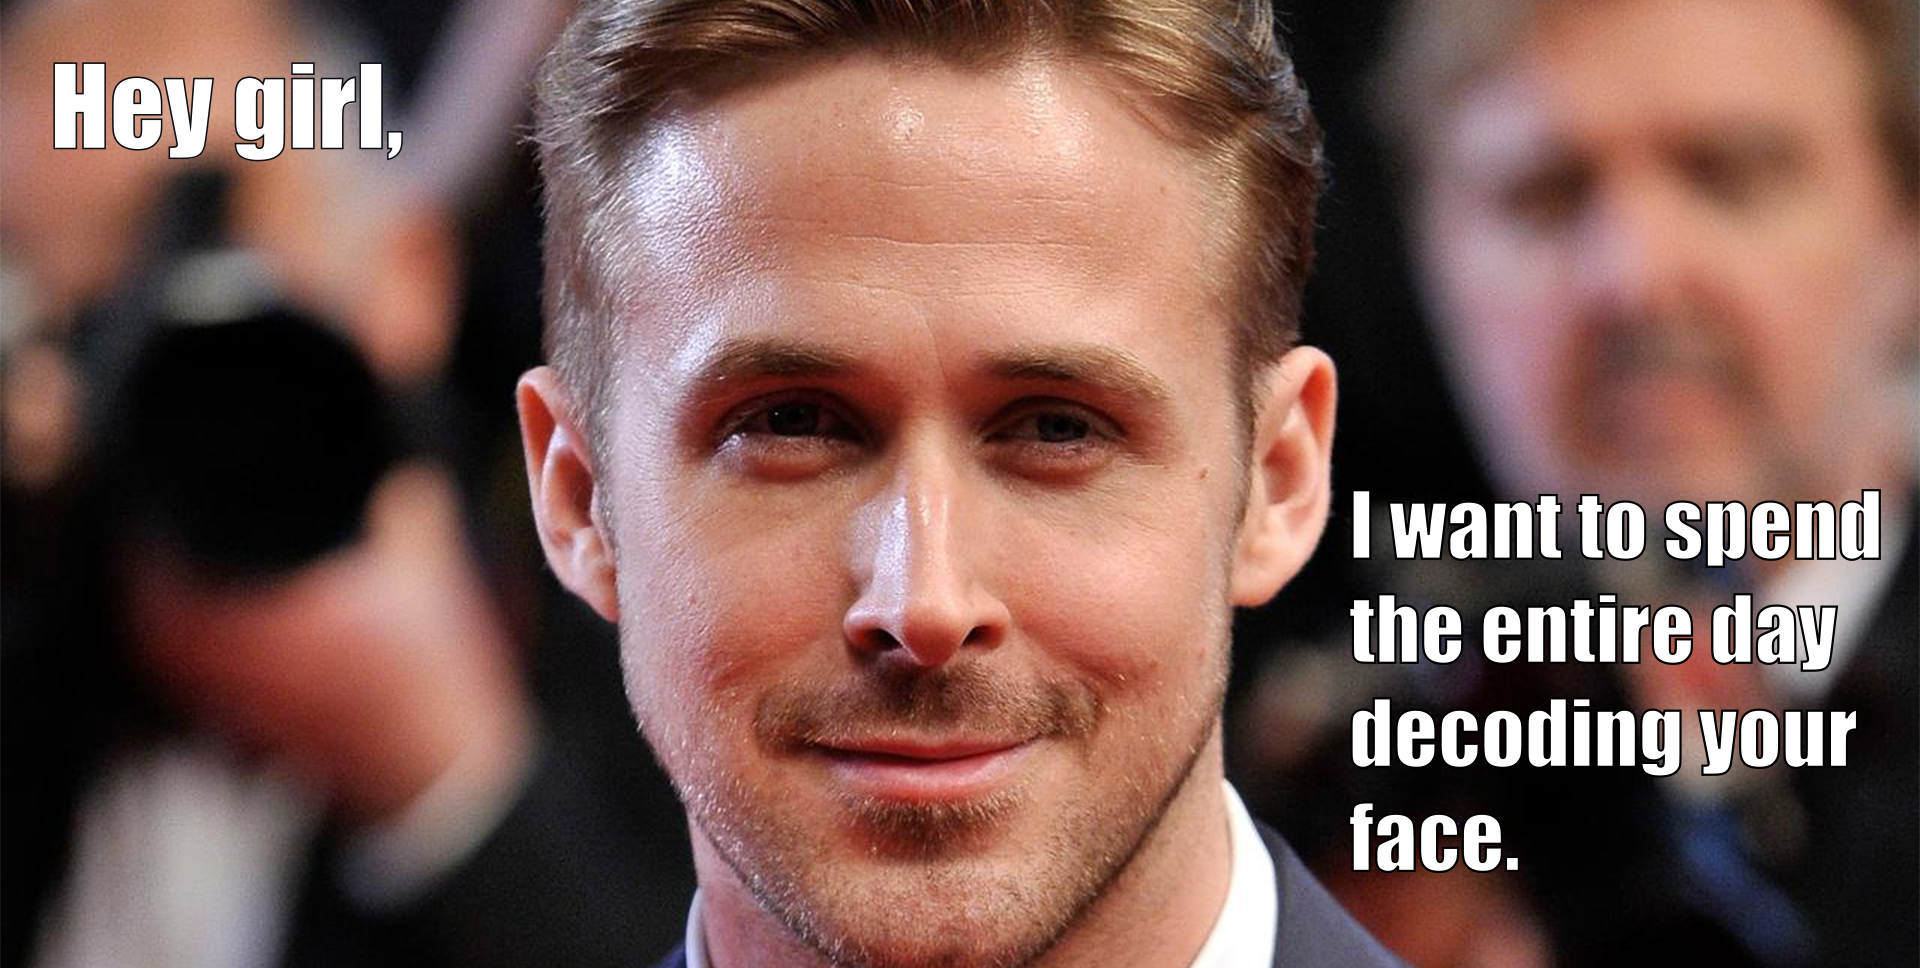 A Ryan Gosling meme with a caption that reads 'Hey girl, I want to spend the entire day decoding your face.'